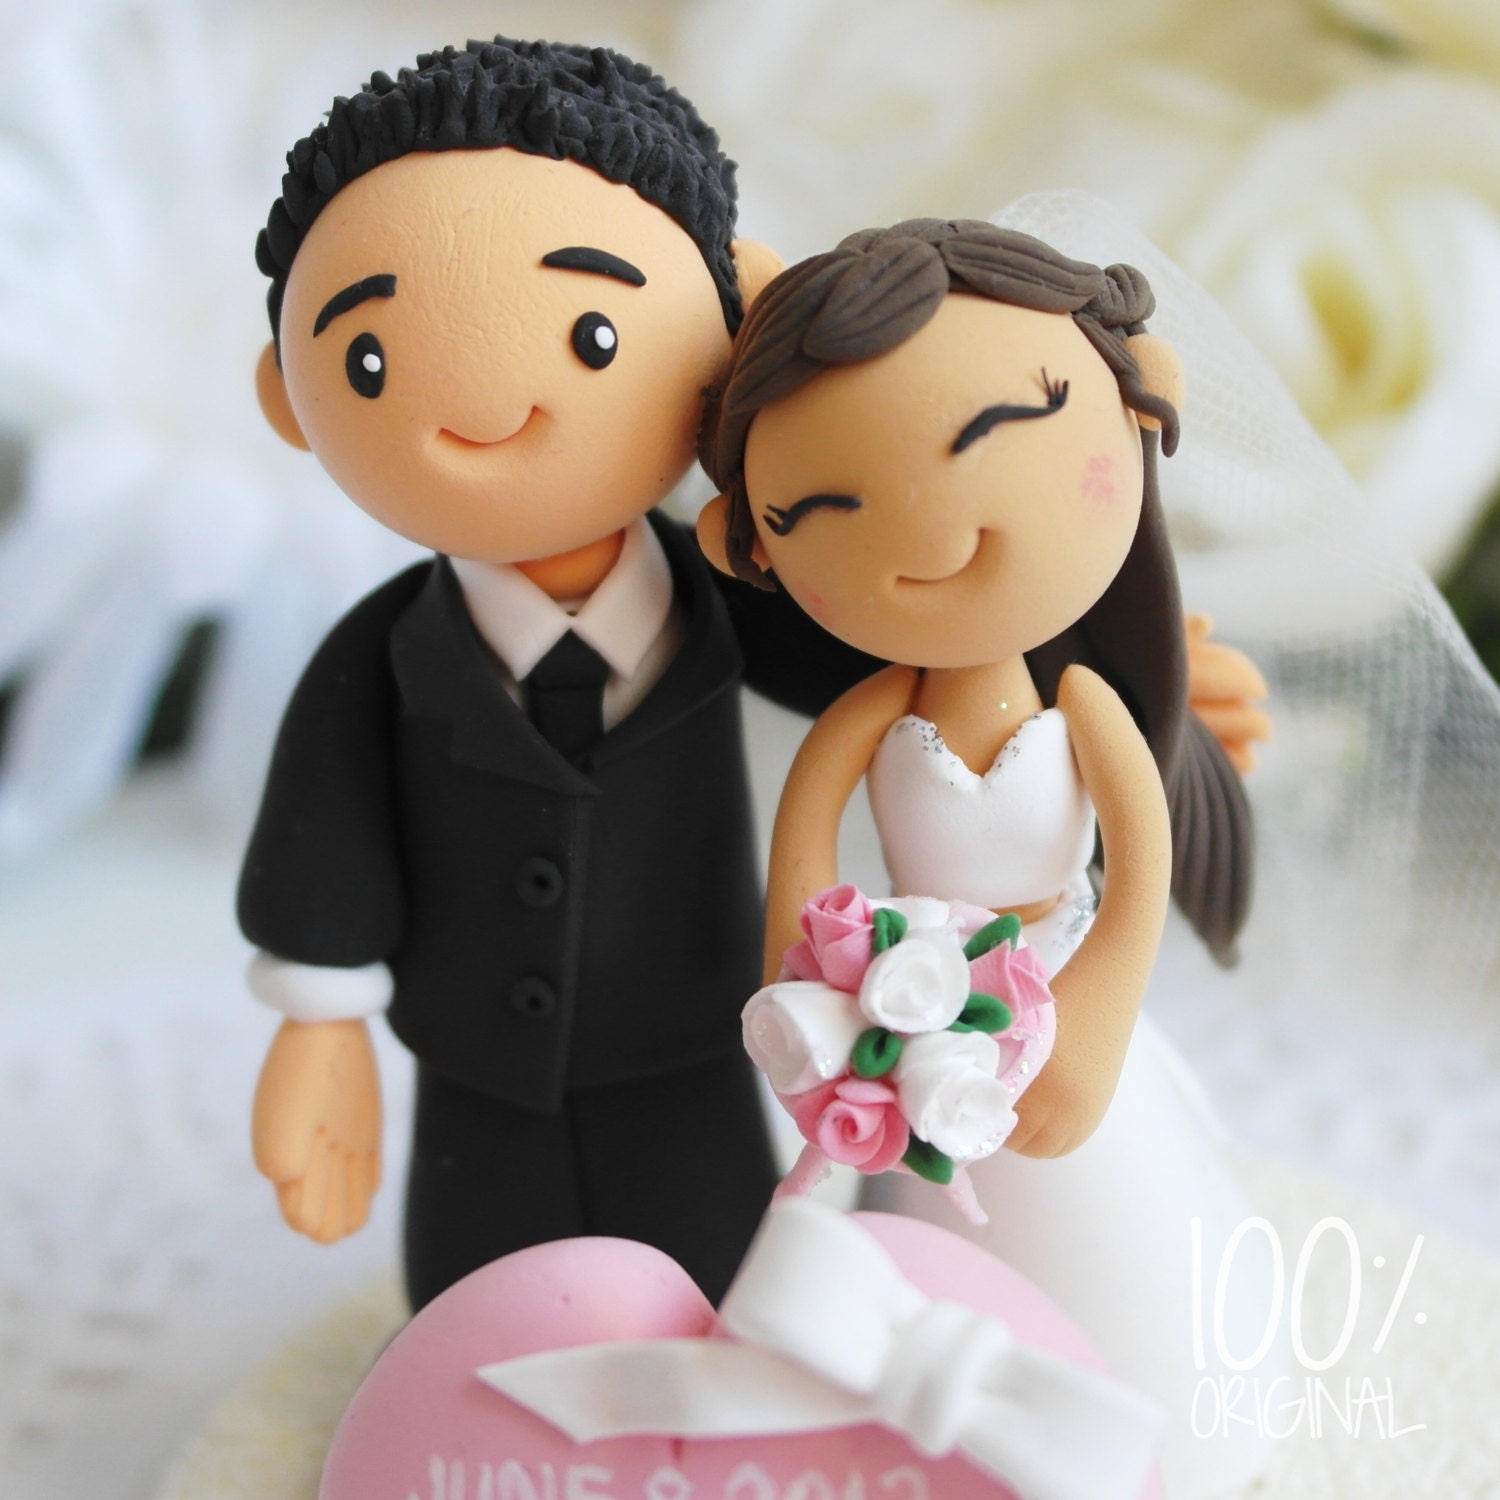 Cake Toppers Out Of Clay